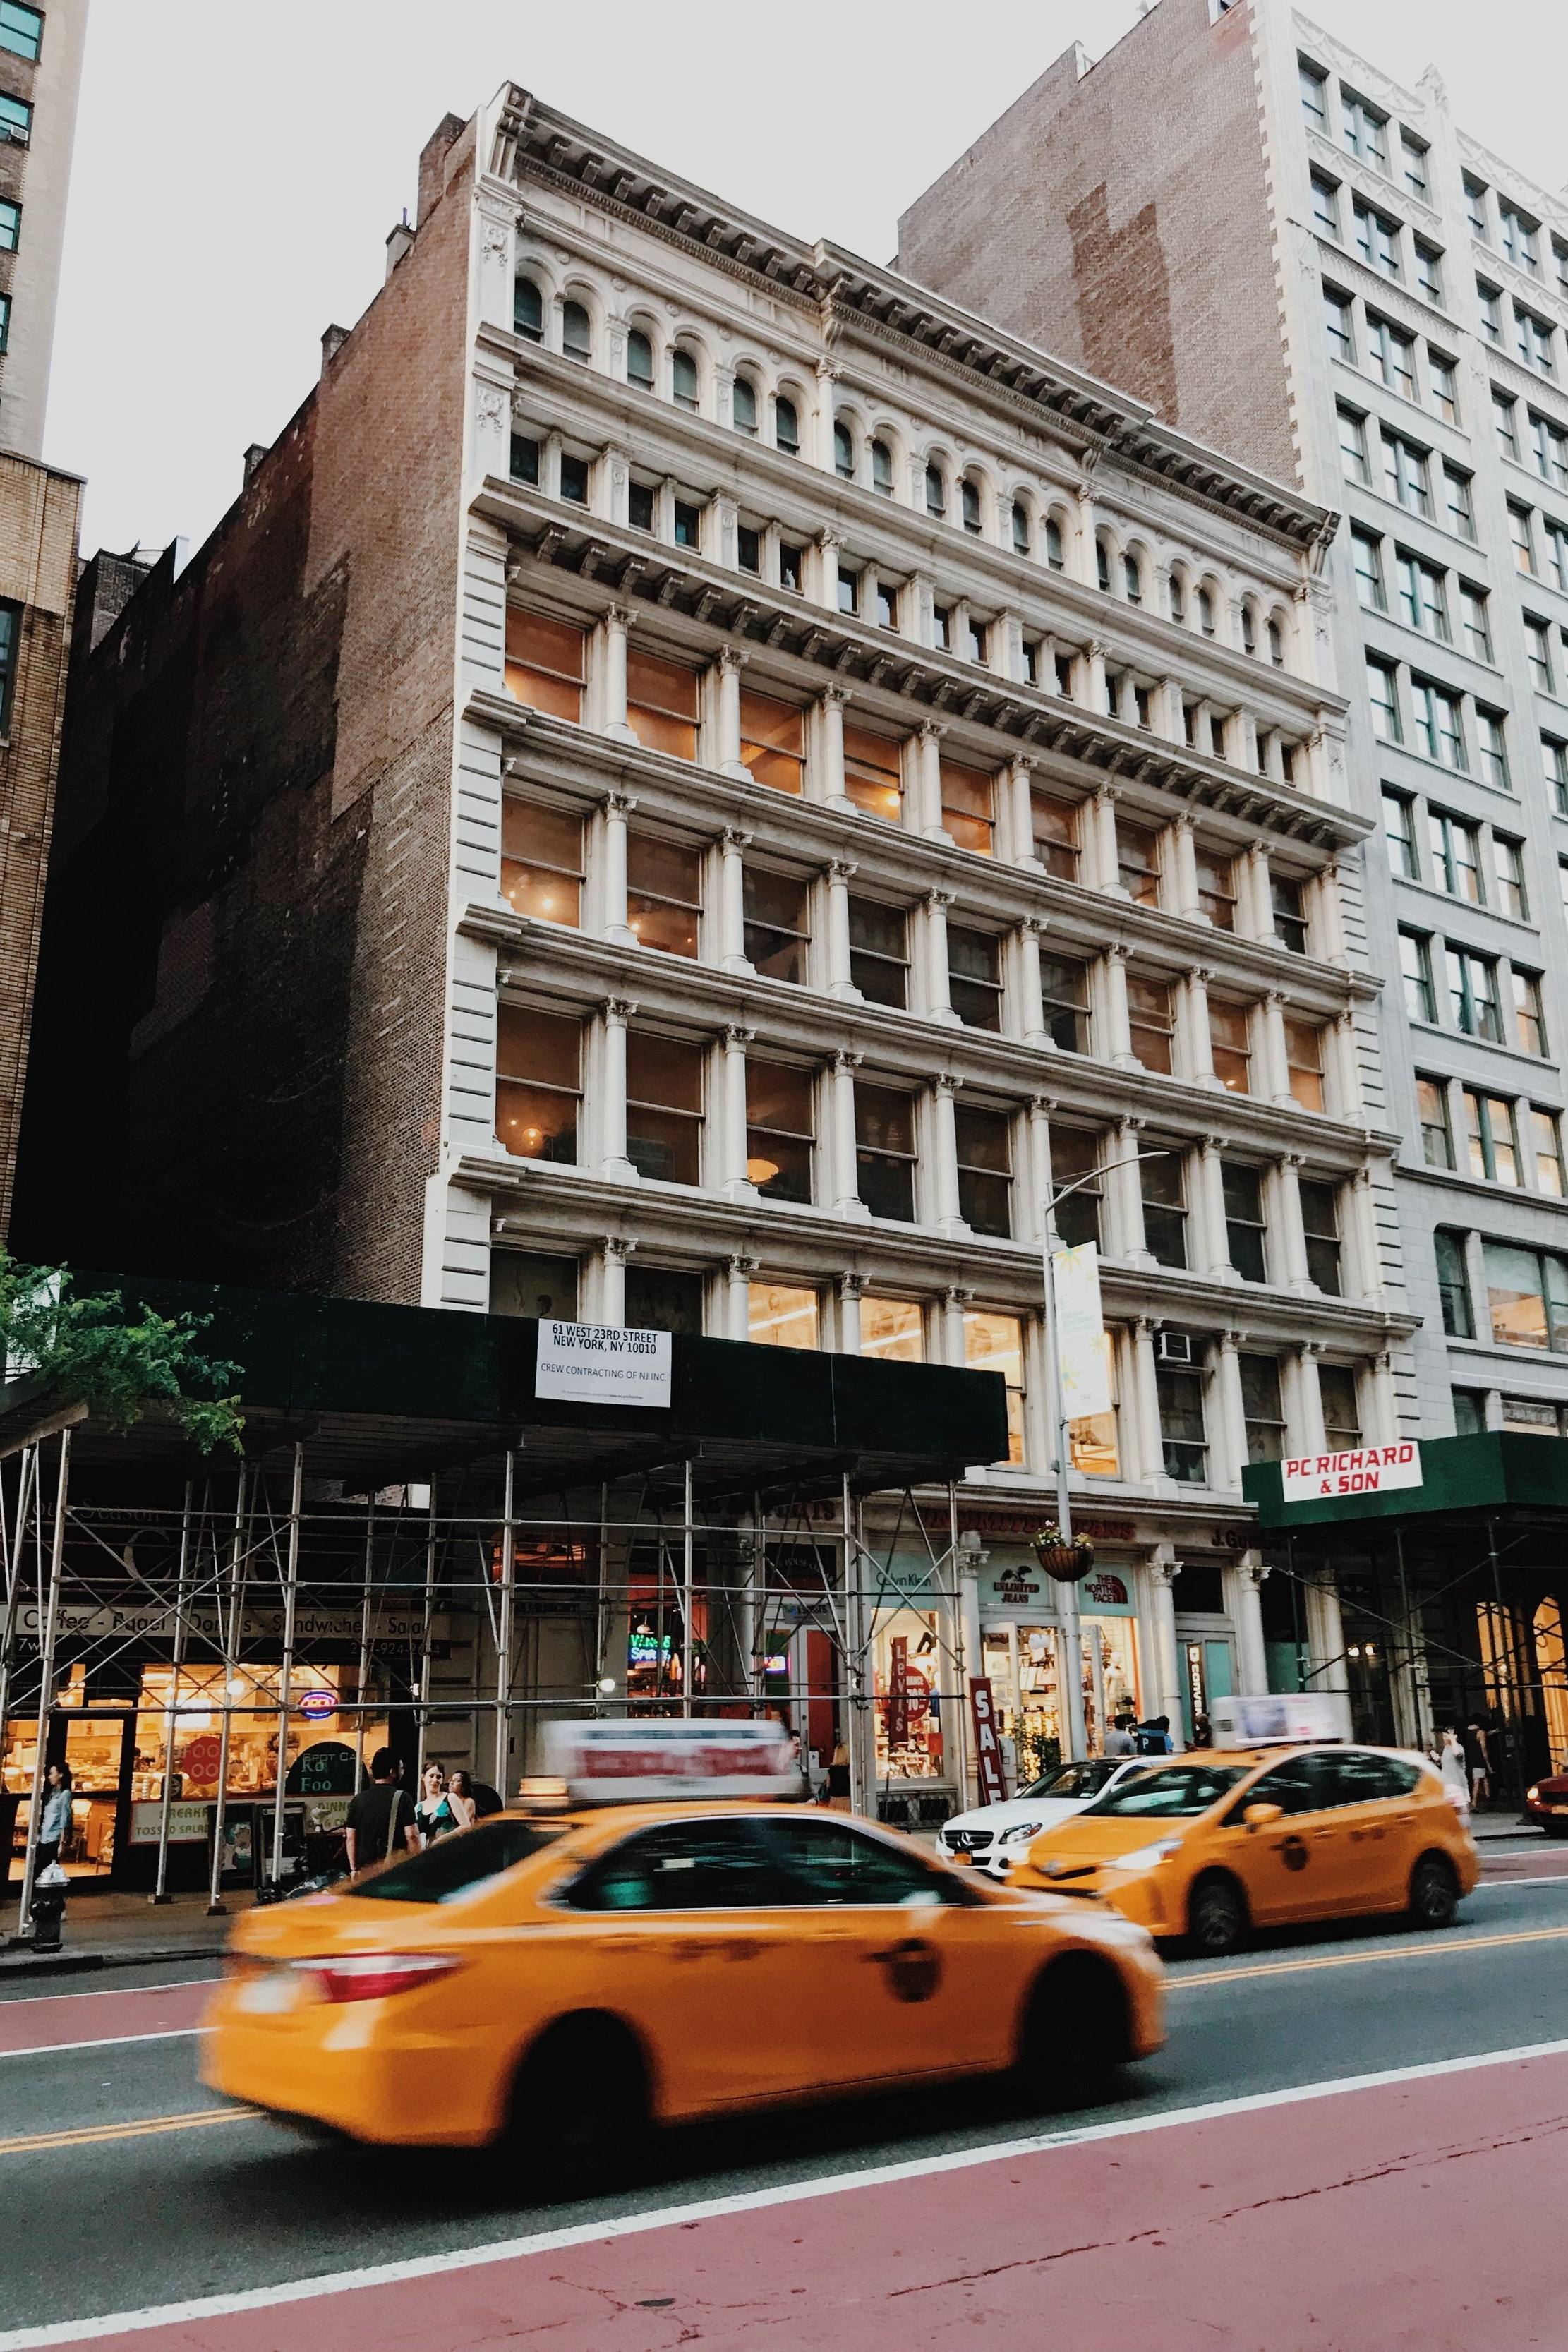 Cast Iron Exterior Restoration Nears Completion - June 21, 2018Work is almost complete on the exterior restoration of this century-old cast iron beauty located in the Ladies' Mile Historic District near Madison Square Park.